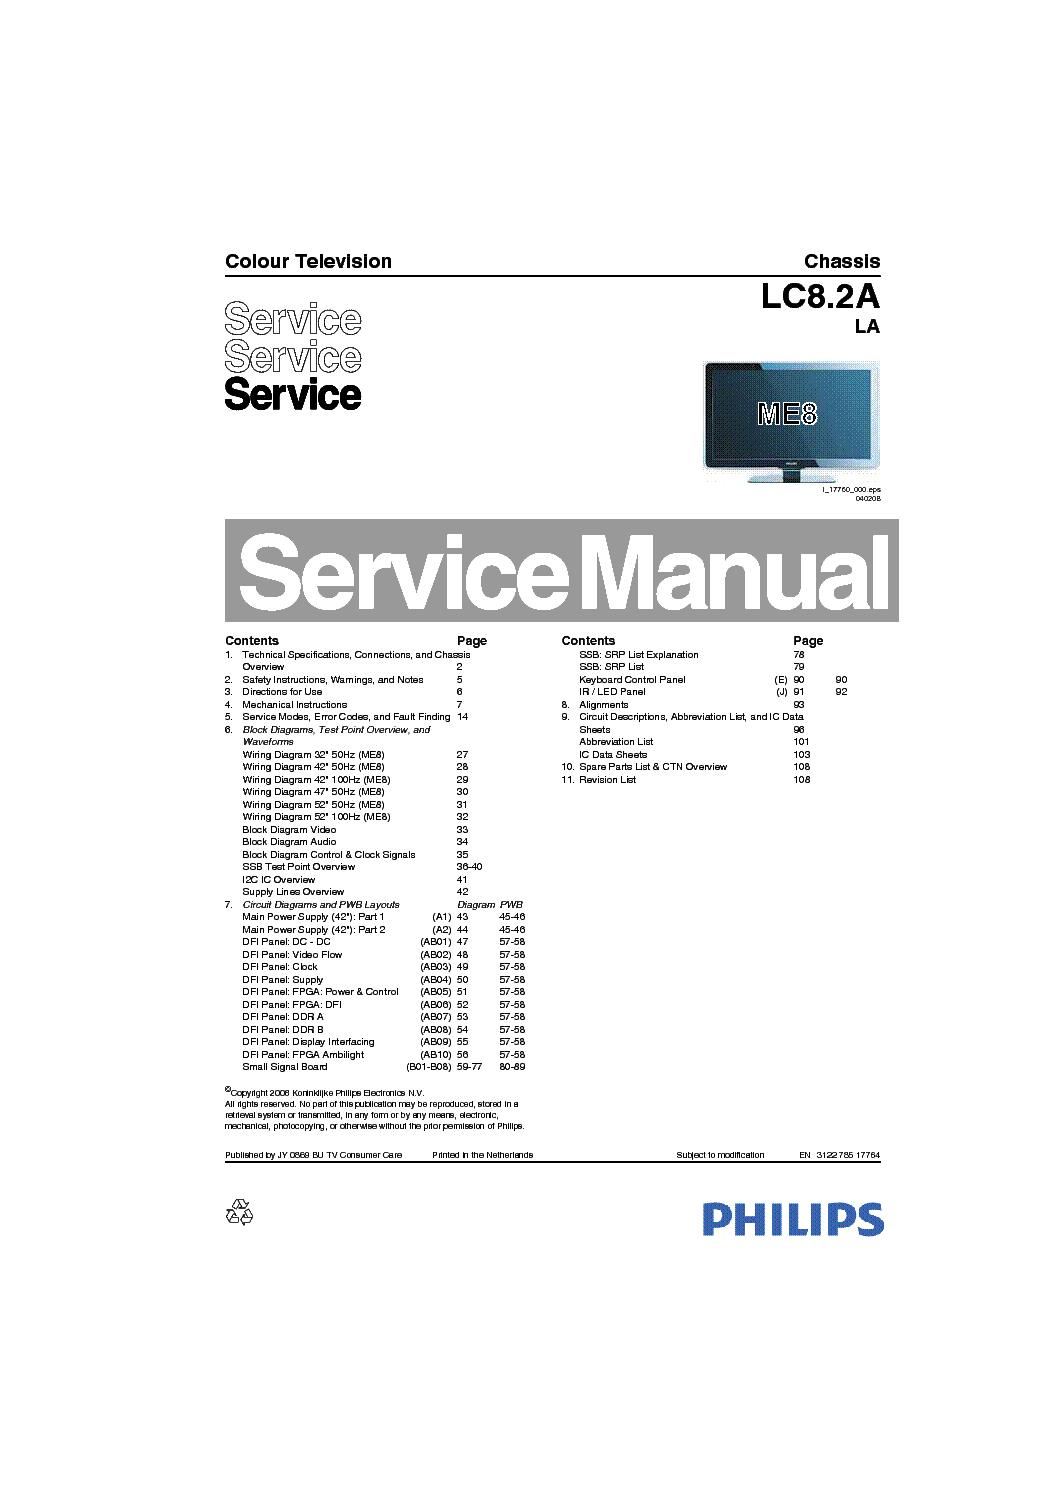 PHILIPS LC8.2A LA CHASSIS LCD TV SM Service Manual